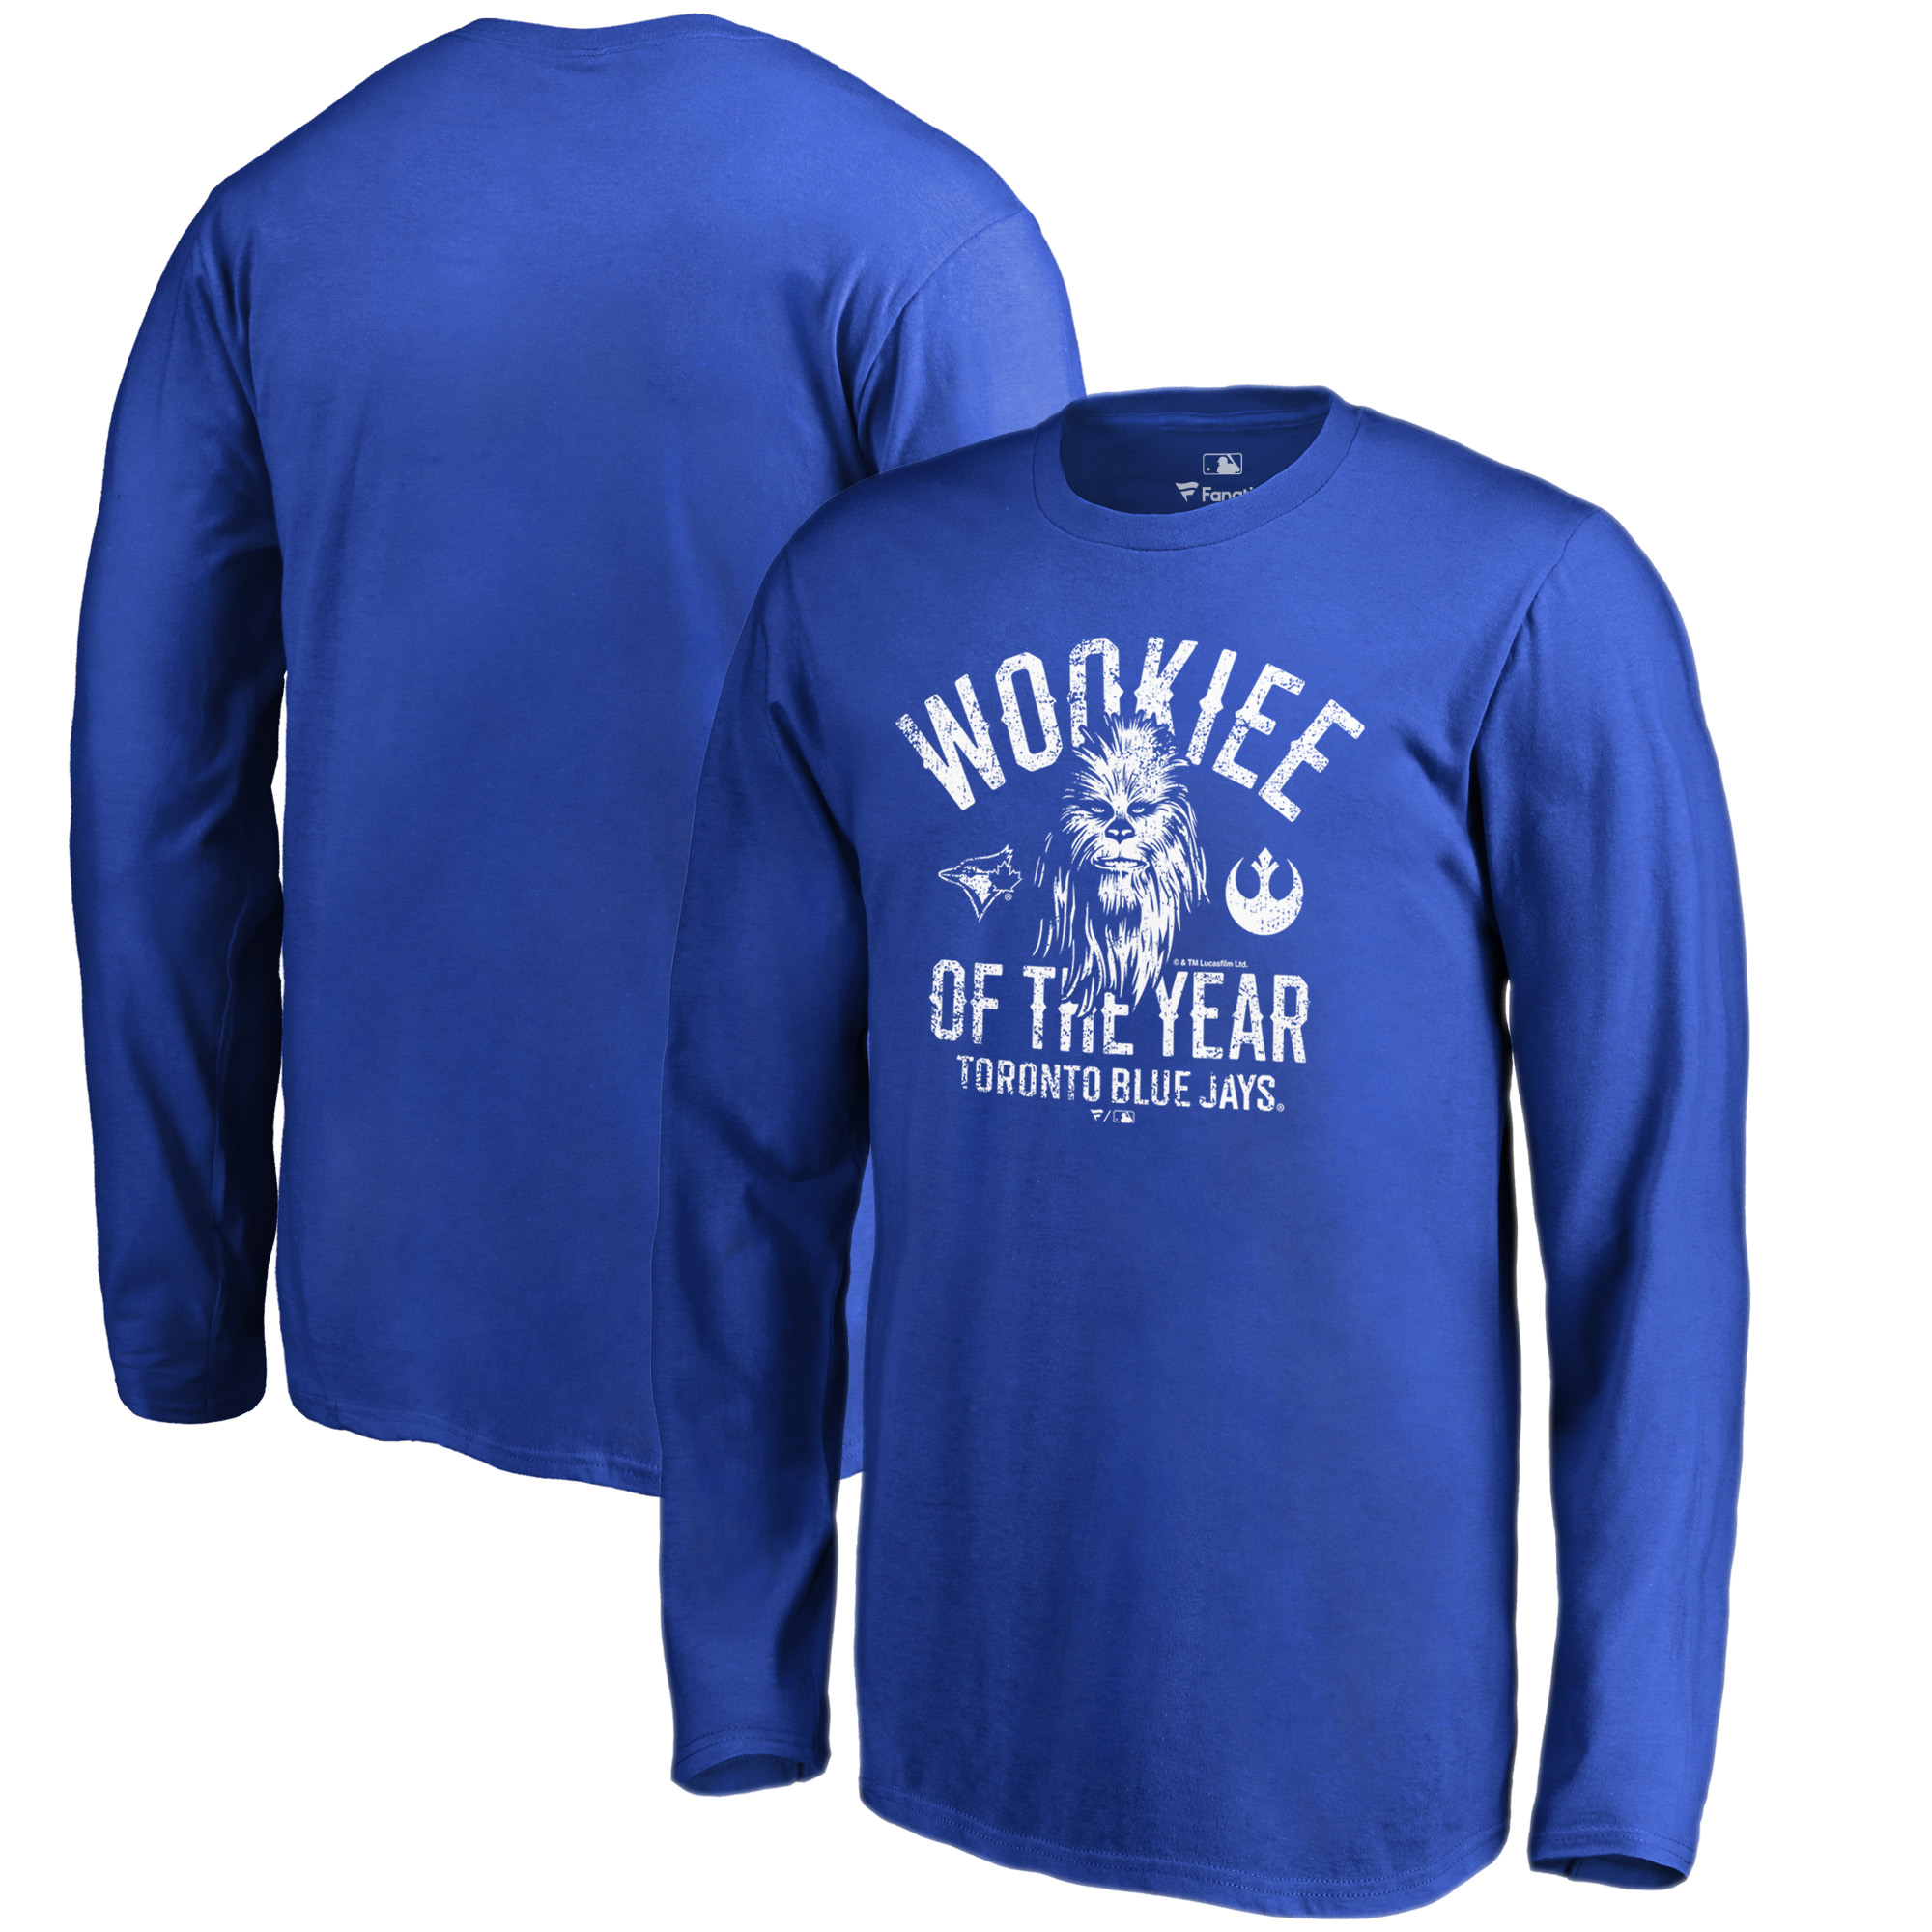 Toronto Blue Jays Fanatics Branded Youth Star Wars Wookiee Of The Year Long Sleeve T-Shirt - Royal